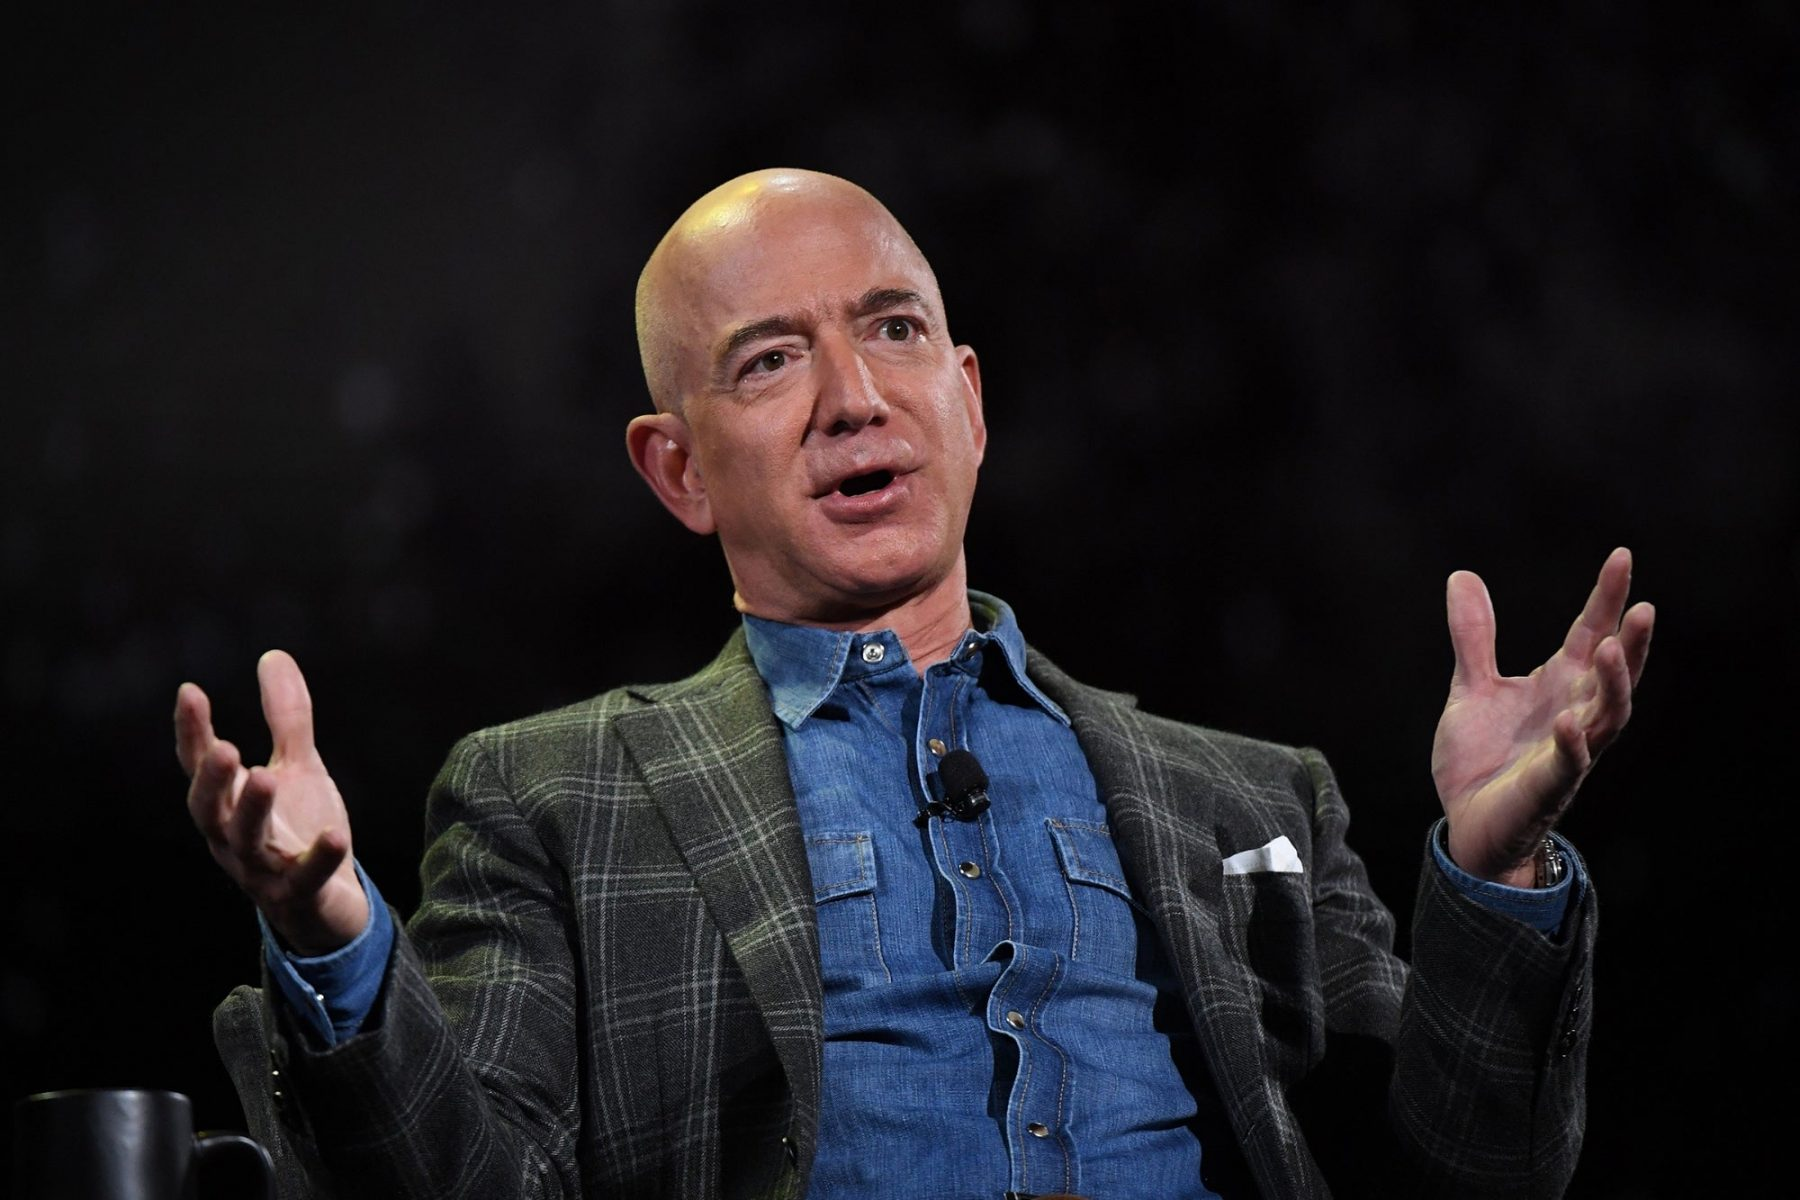 how-a-bizarre-deal-jeff-bezos-made-15-years-ago-inspired-me-to-future-proof-my-company